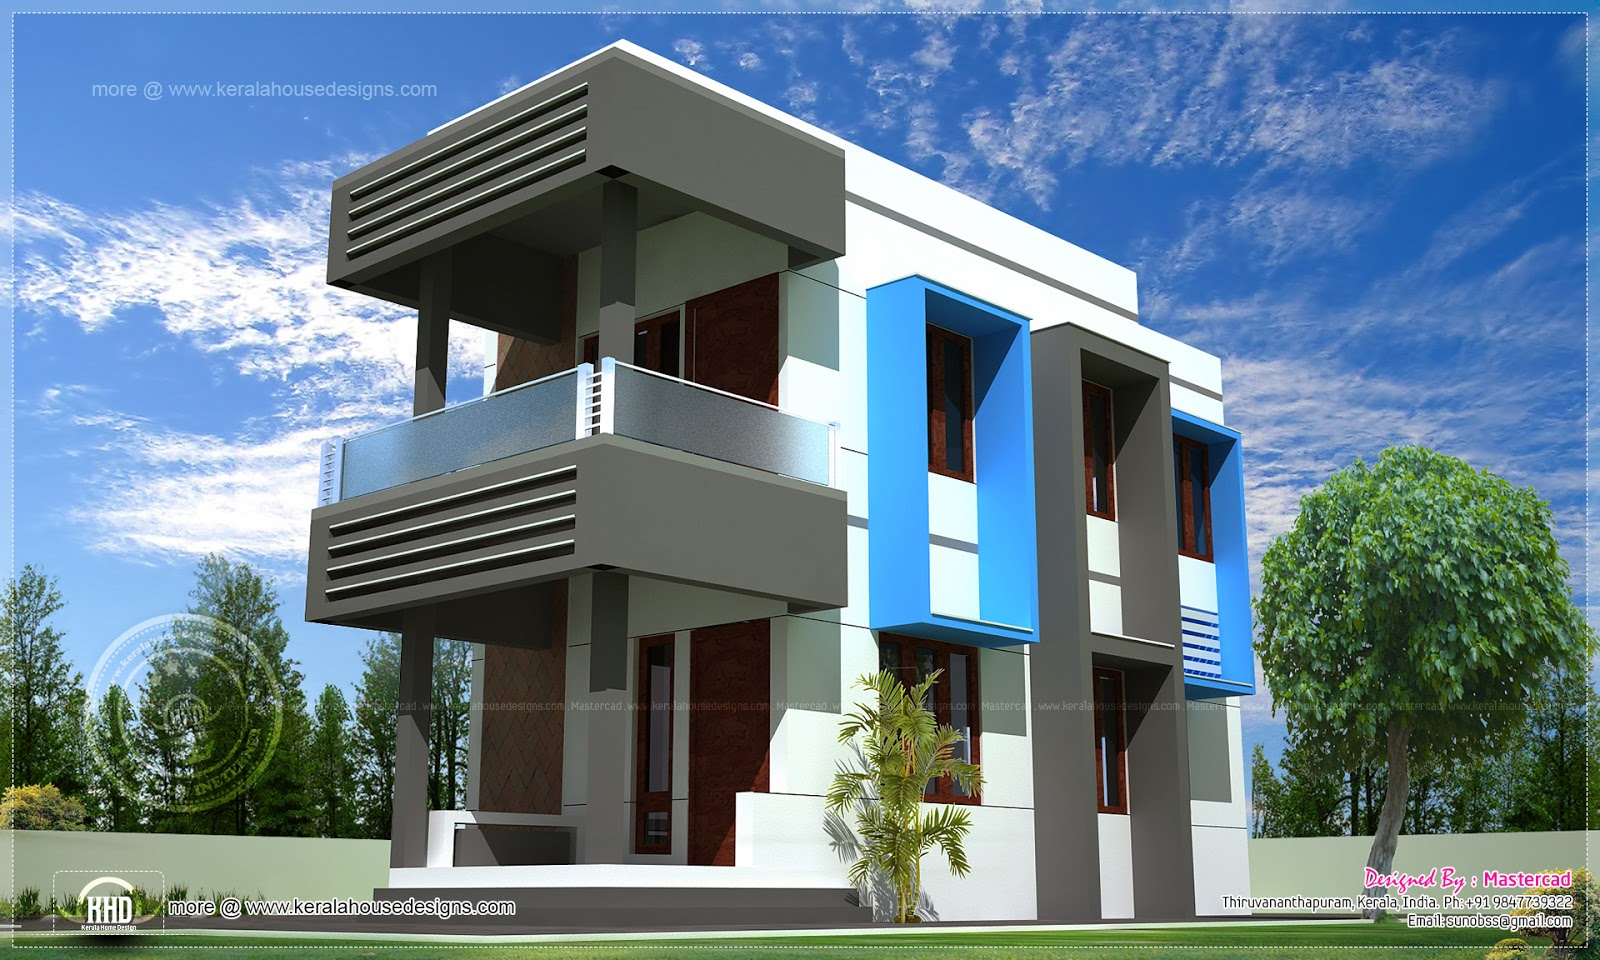 Contemporary compact villa design home kerala plans for Contemporary villa plans